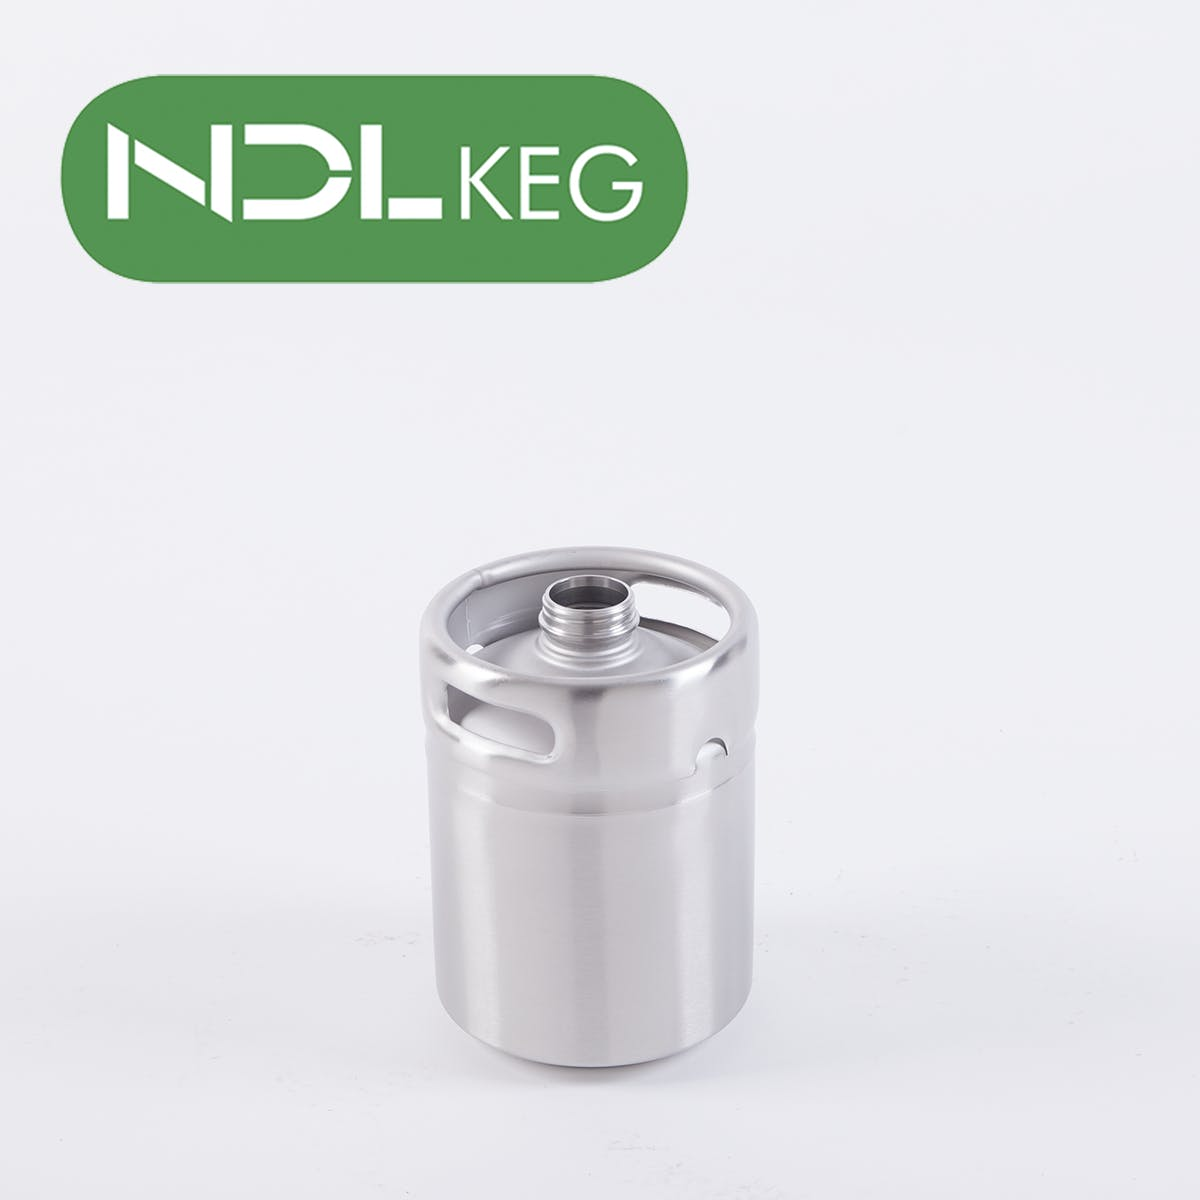 2-Liter Mini-Keg Growler Growler sold by NDL Keg